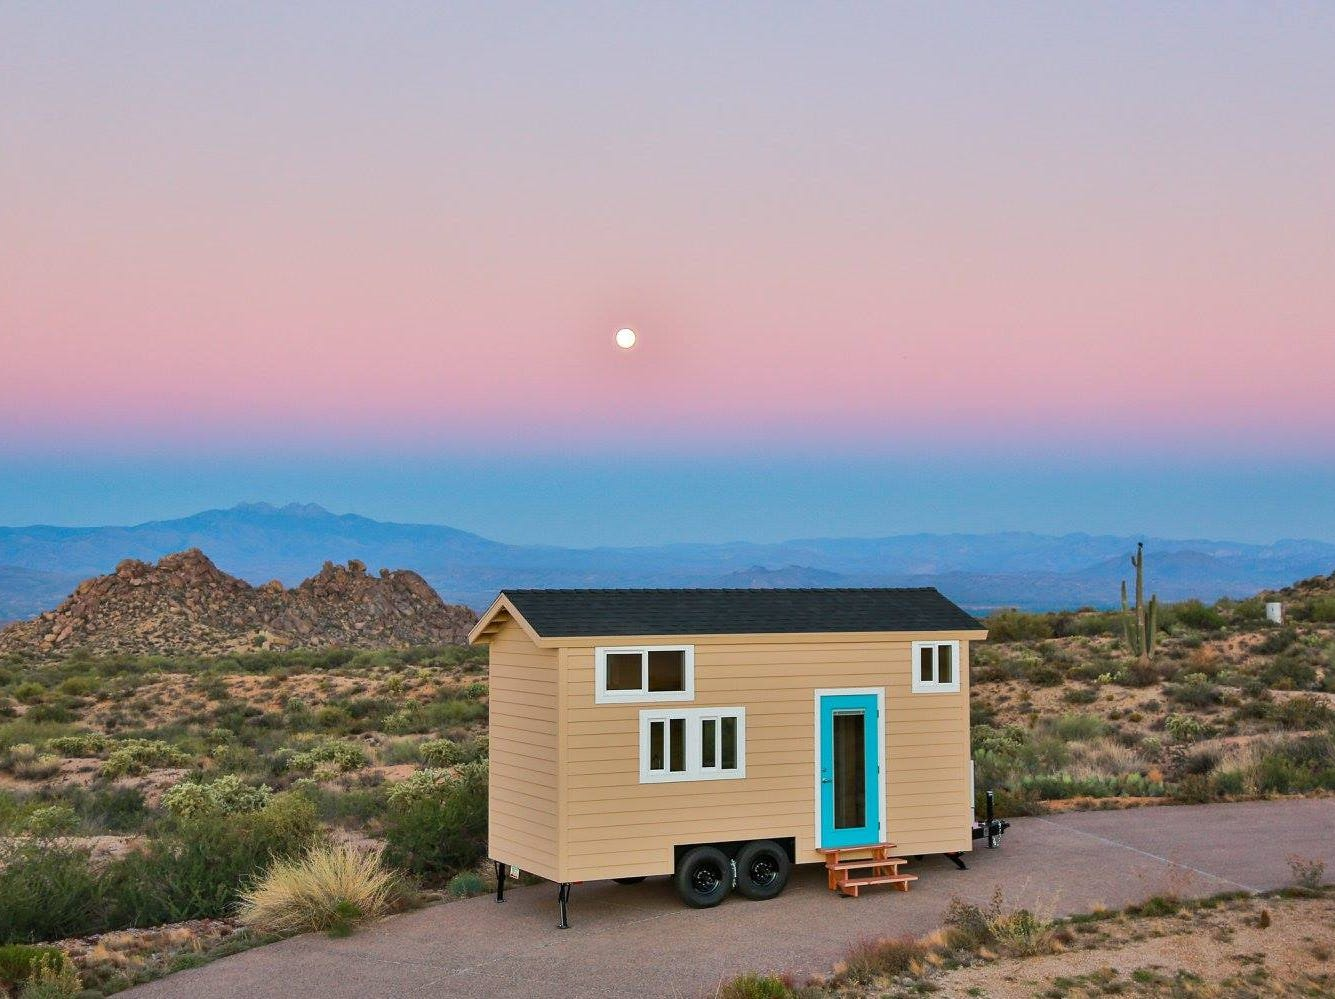 Another view of a tiny home with the Arizona sunset in the background.